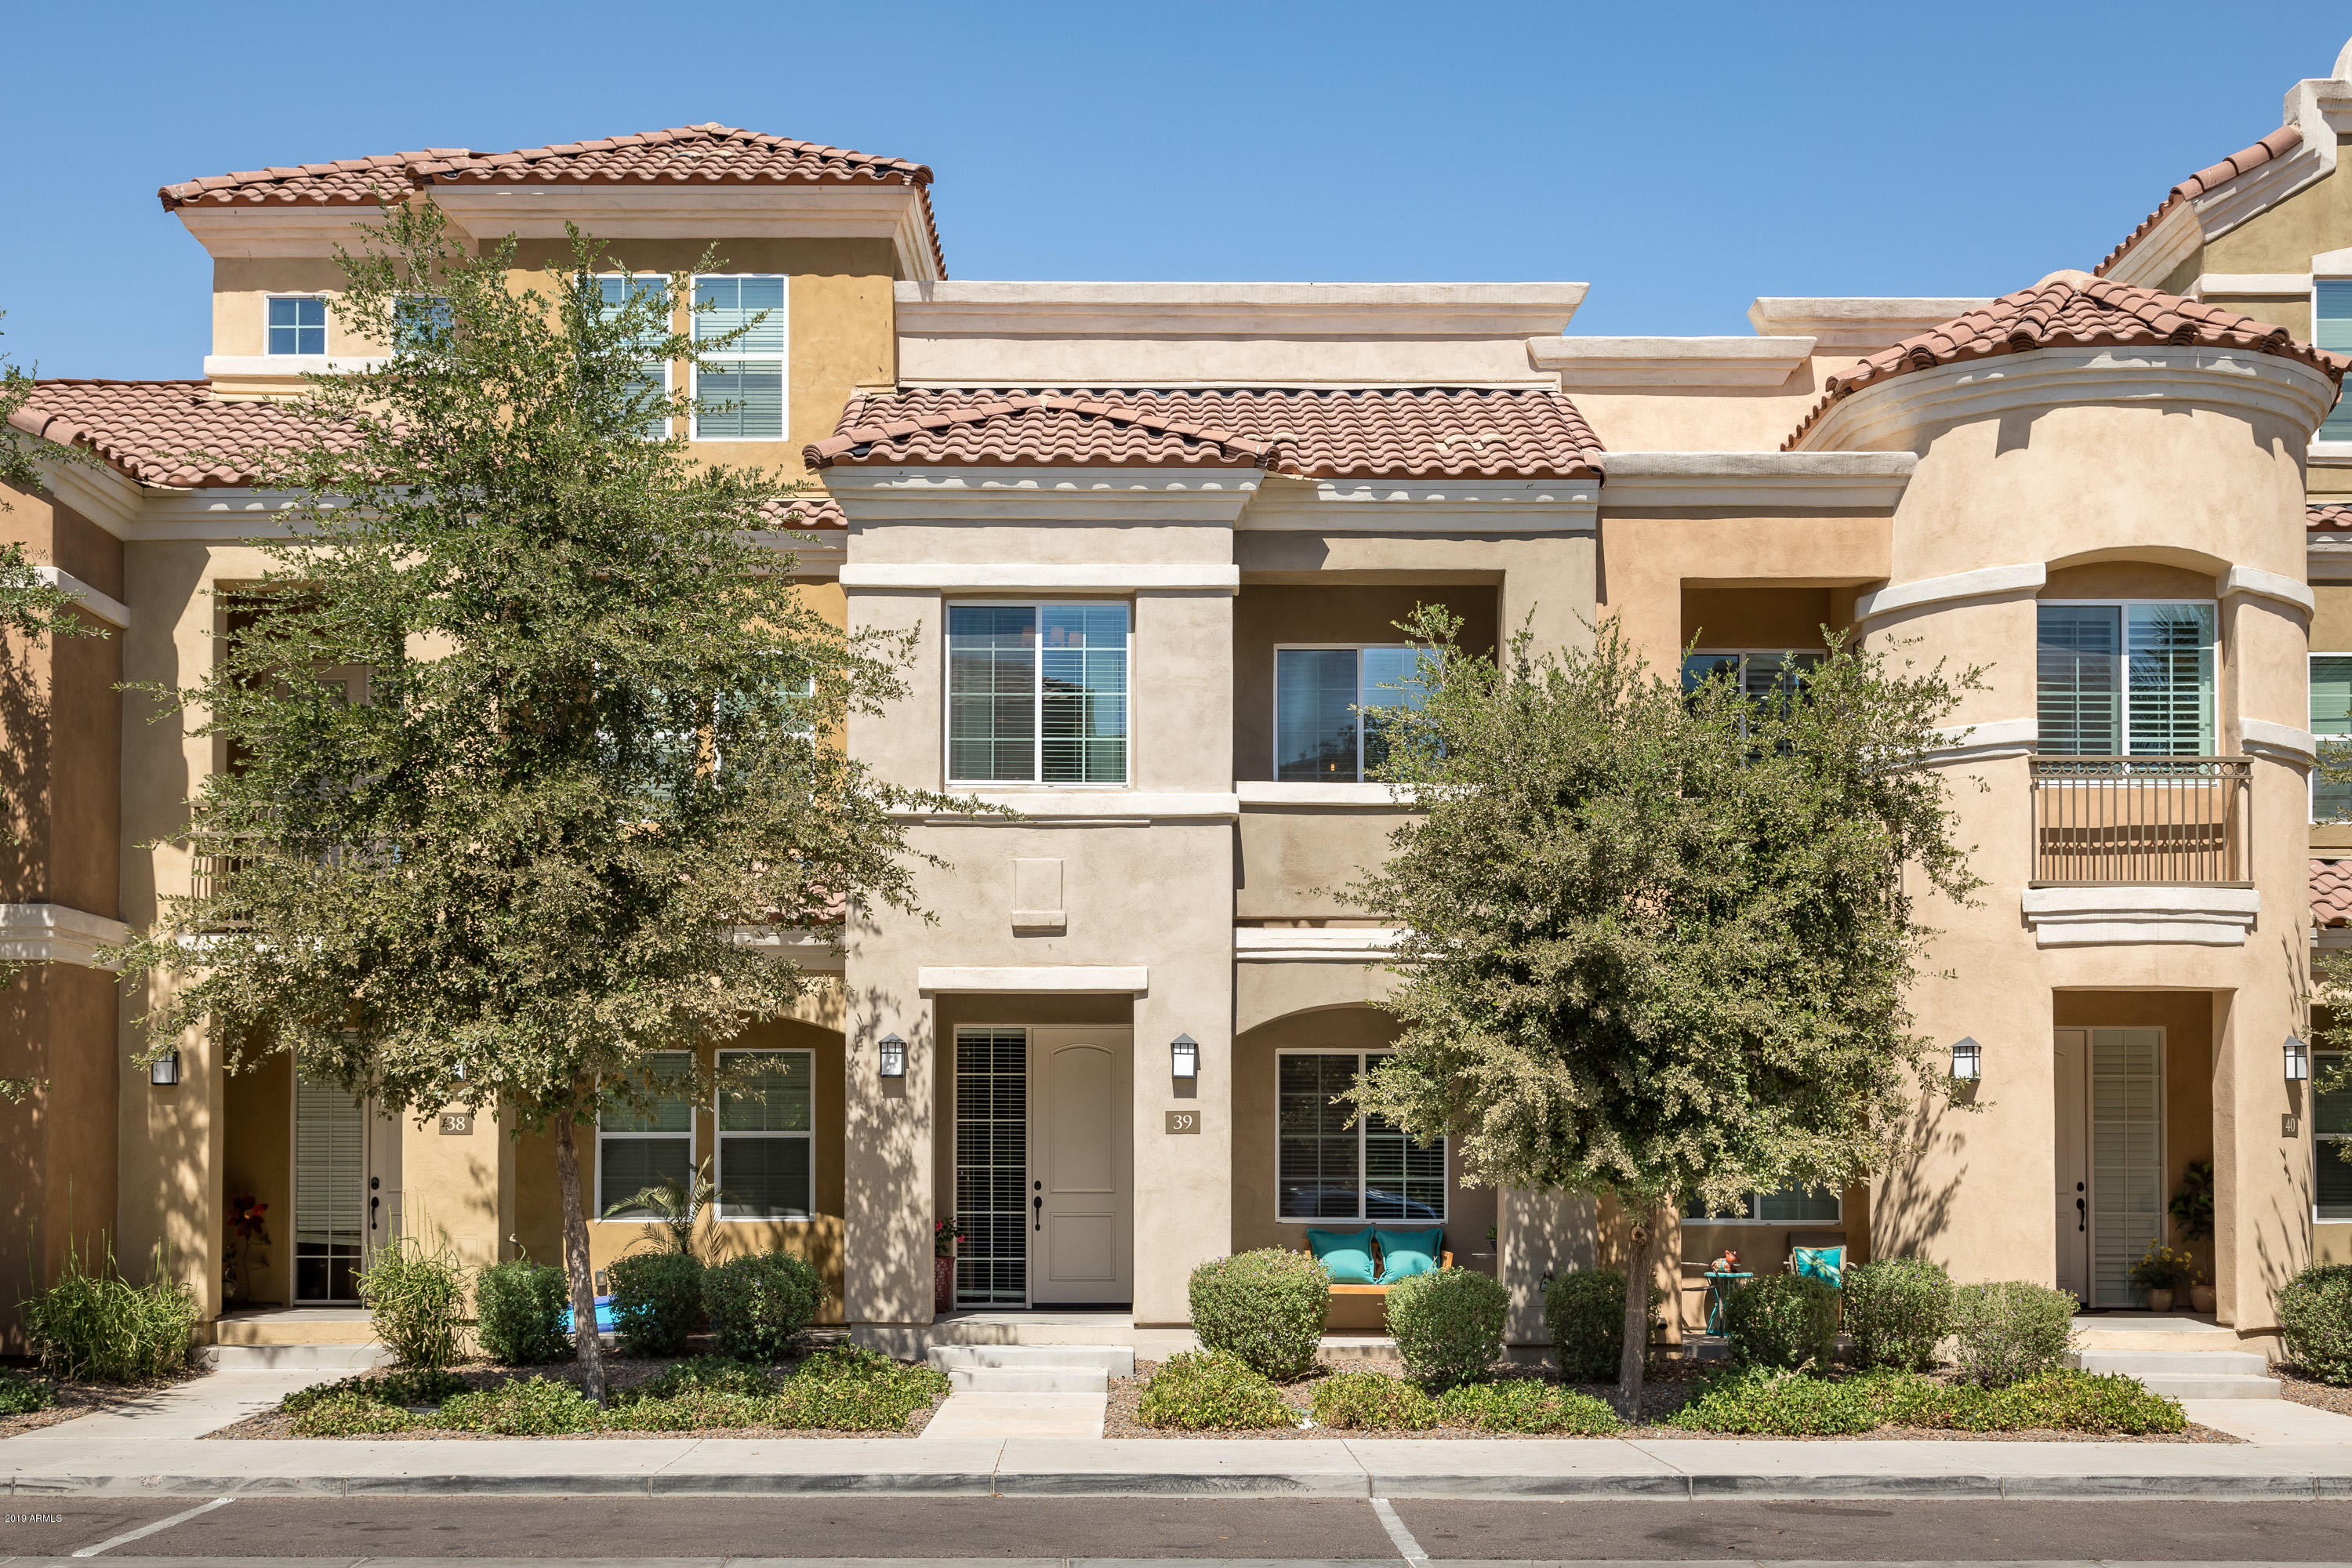 Photo of 124 N CALIFORNIA Street #39, Chandler, AZ 85225